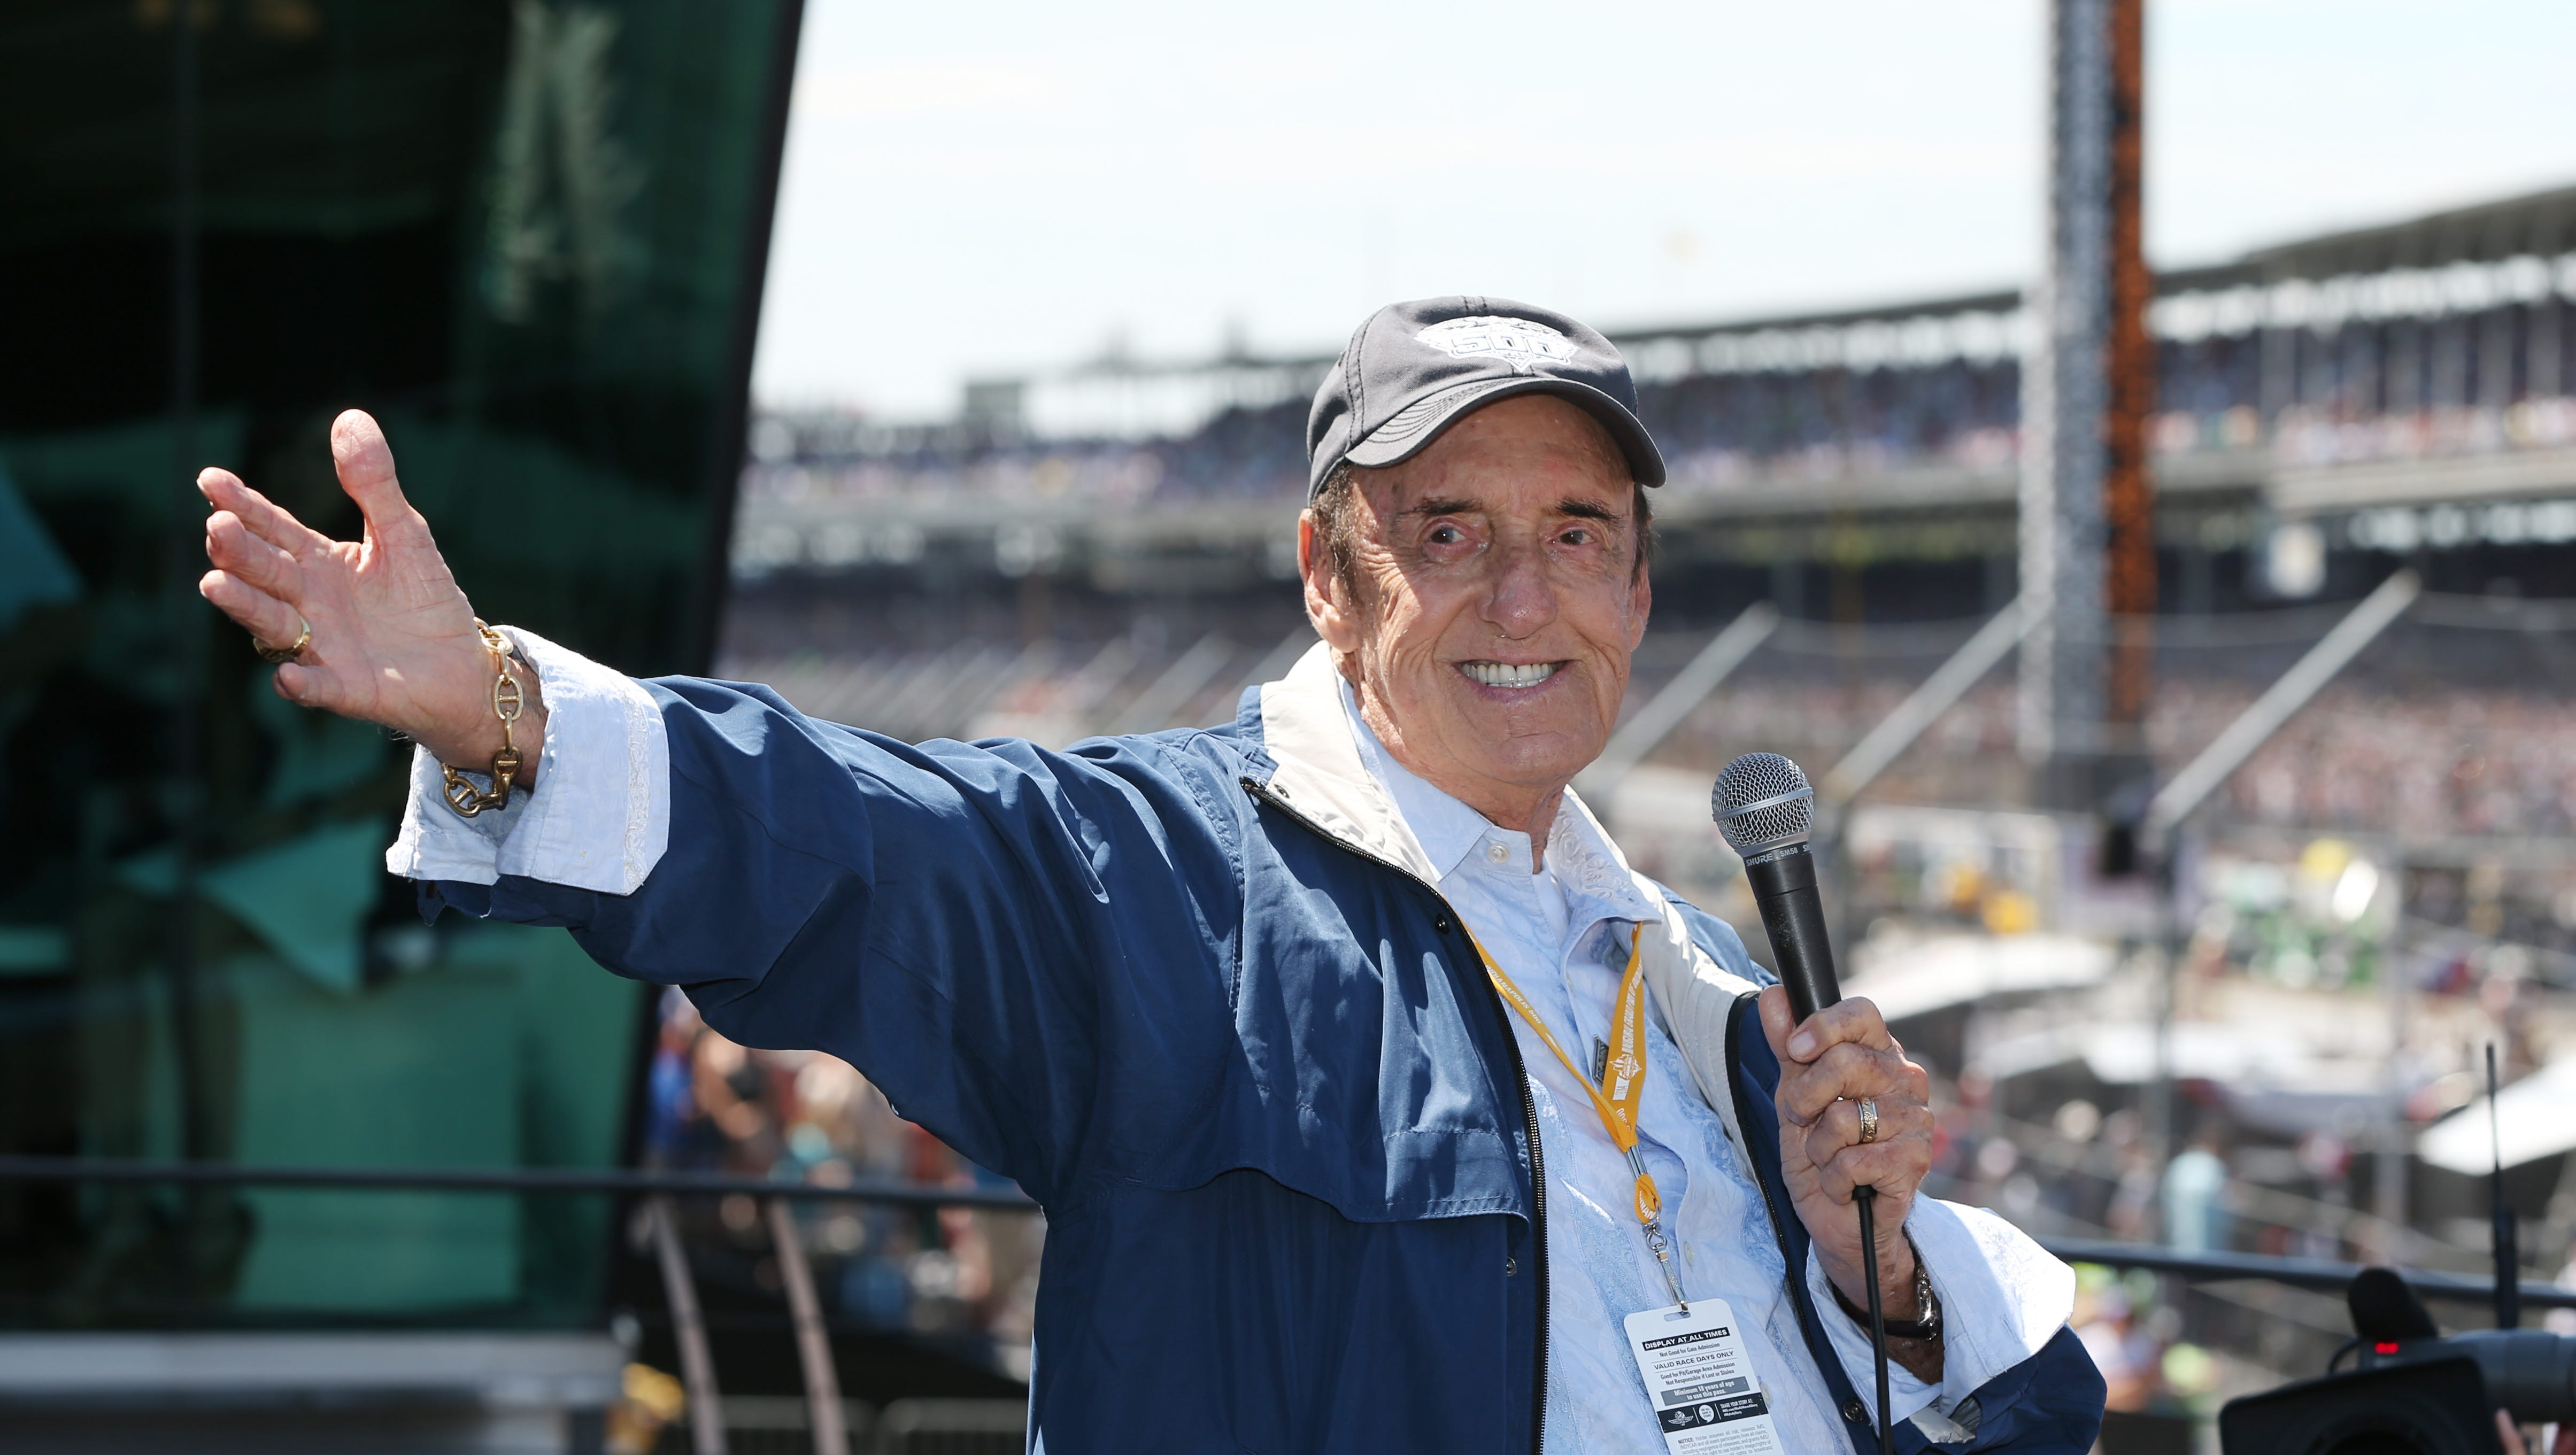 Jim Nabors Beloved Indy 500 Back Home Singer And Tv S Gomer Pyle Dead At 87 Help us build our profile of stan cadwallader! jim nabors beloved indy 500 singer dead at 87